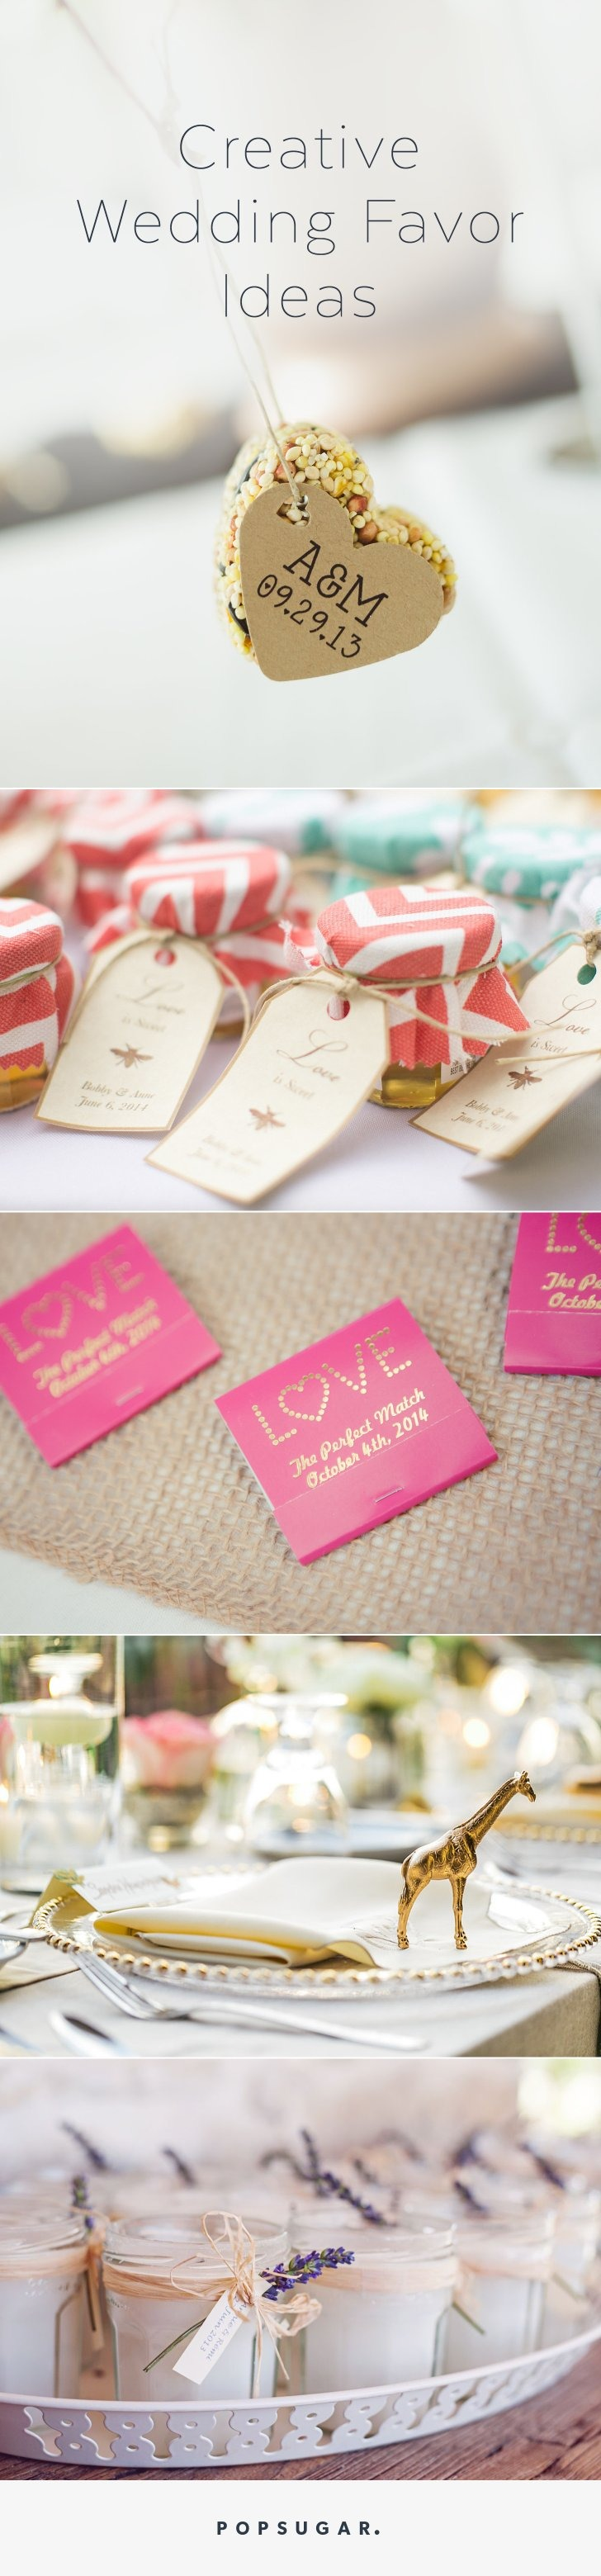 48 Creative, Fun, and Personalized Wedding Favor Ideas | Pinterest ...